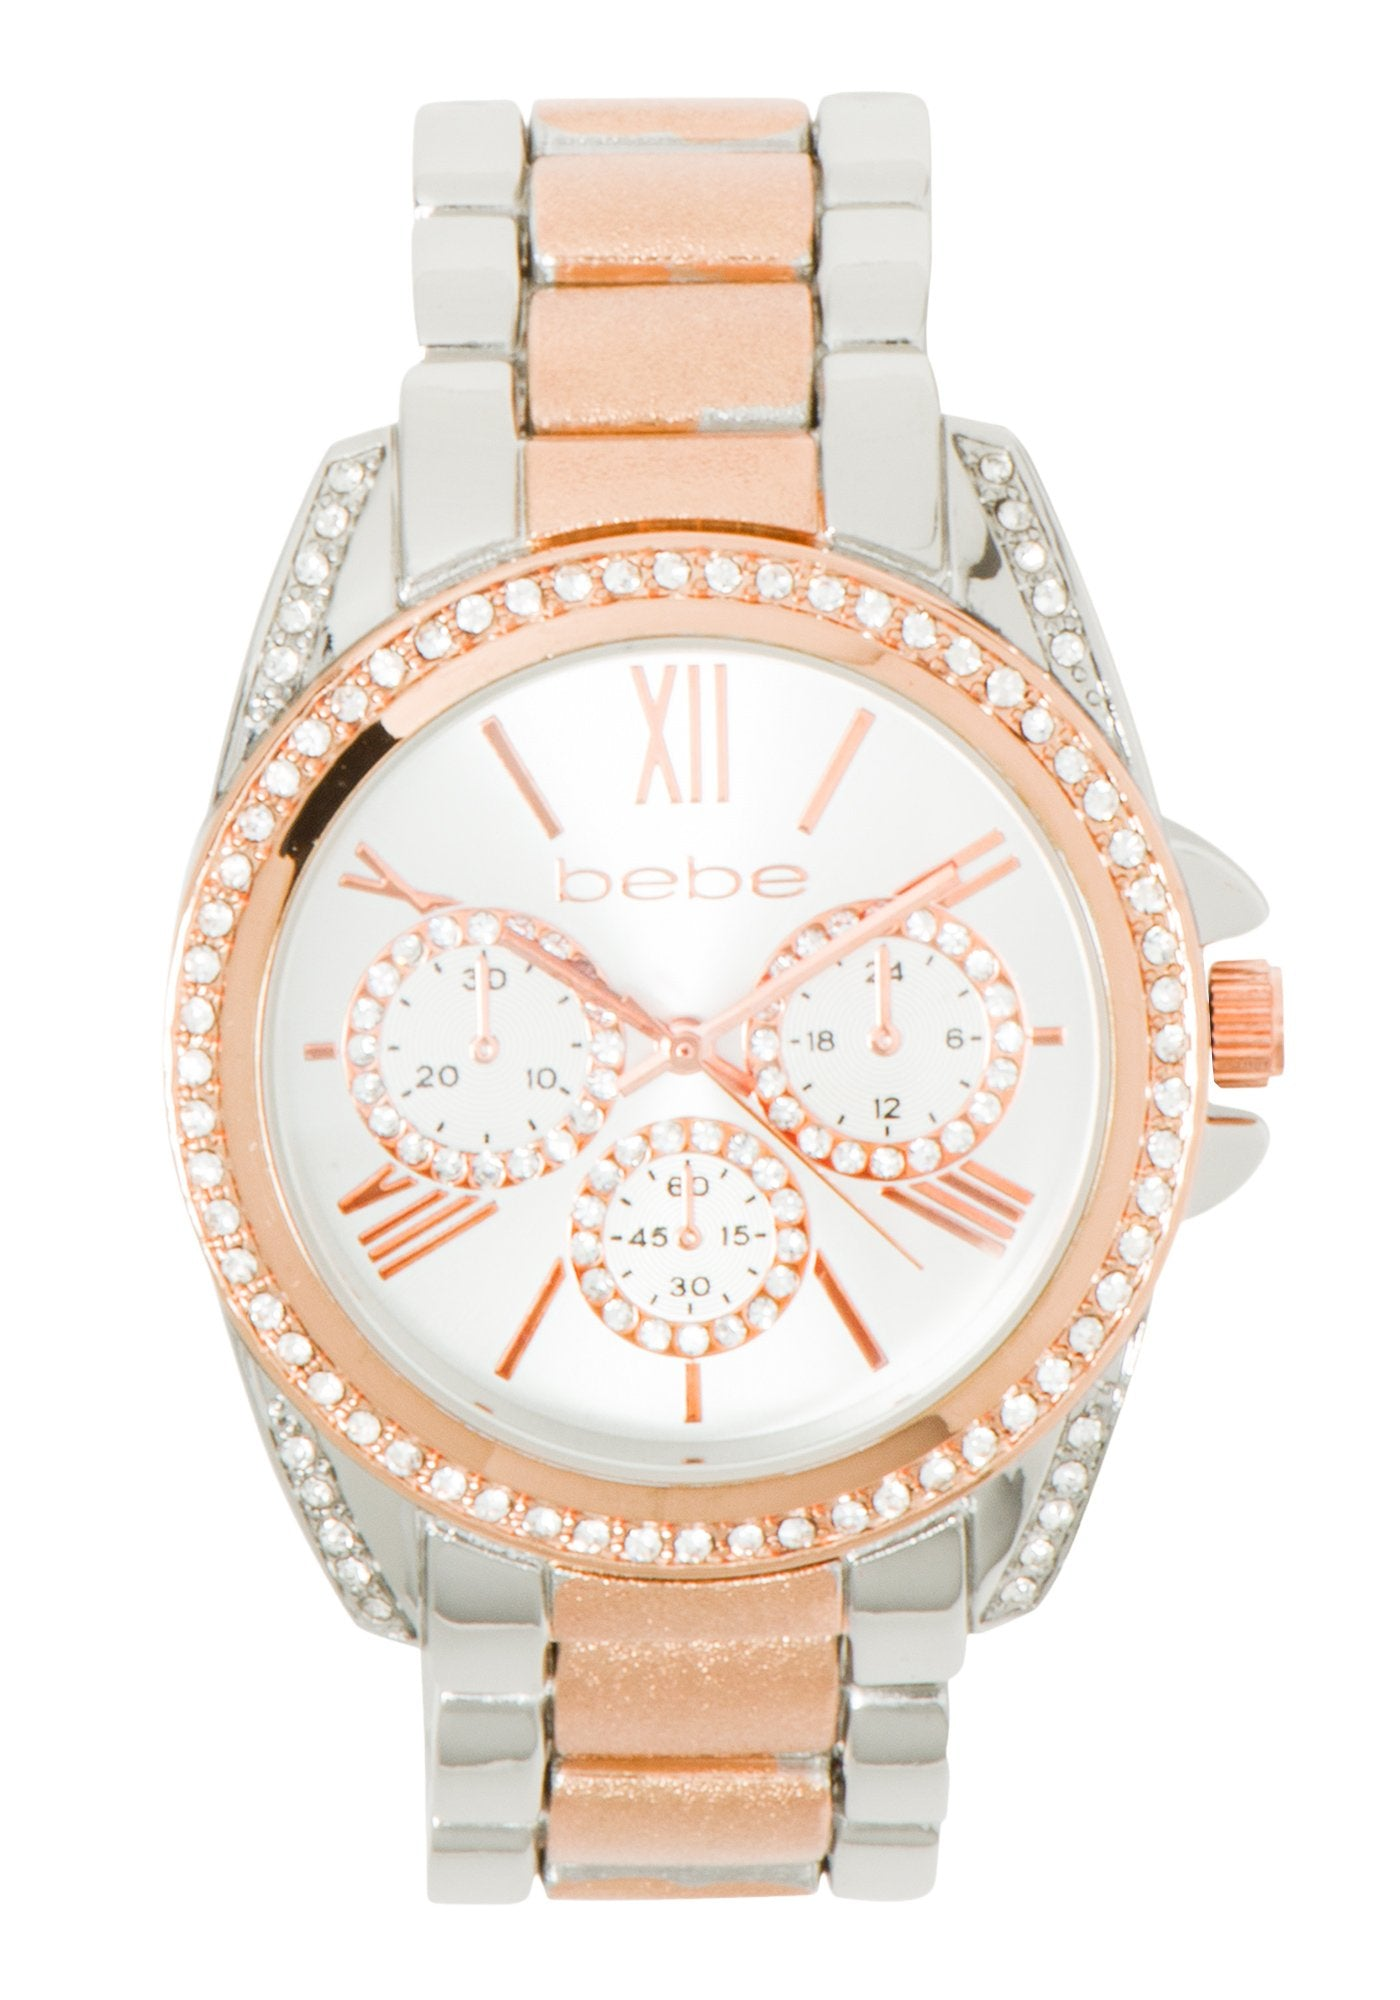 Bebe Women's Mixed Metal Link Watch in SILVER/ROSE GOLD